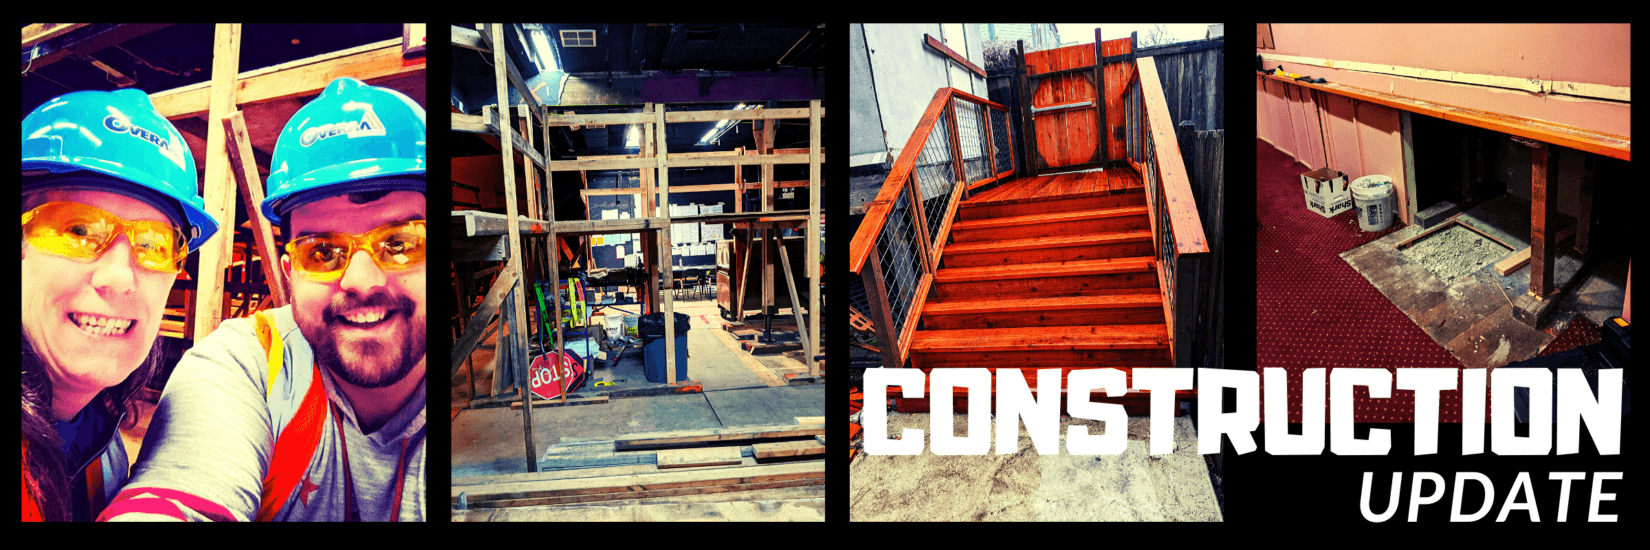 Read the latest Construction Update!